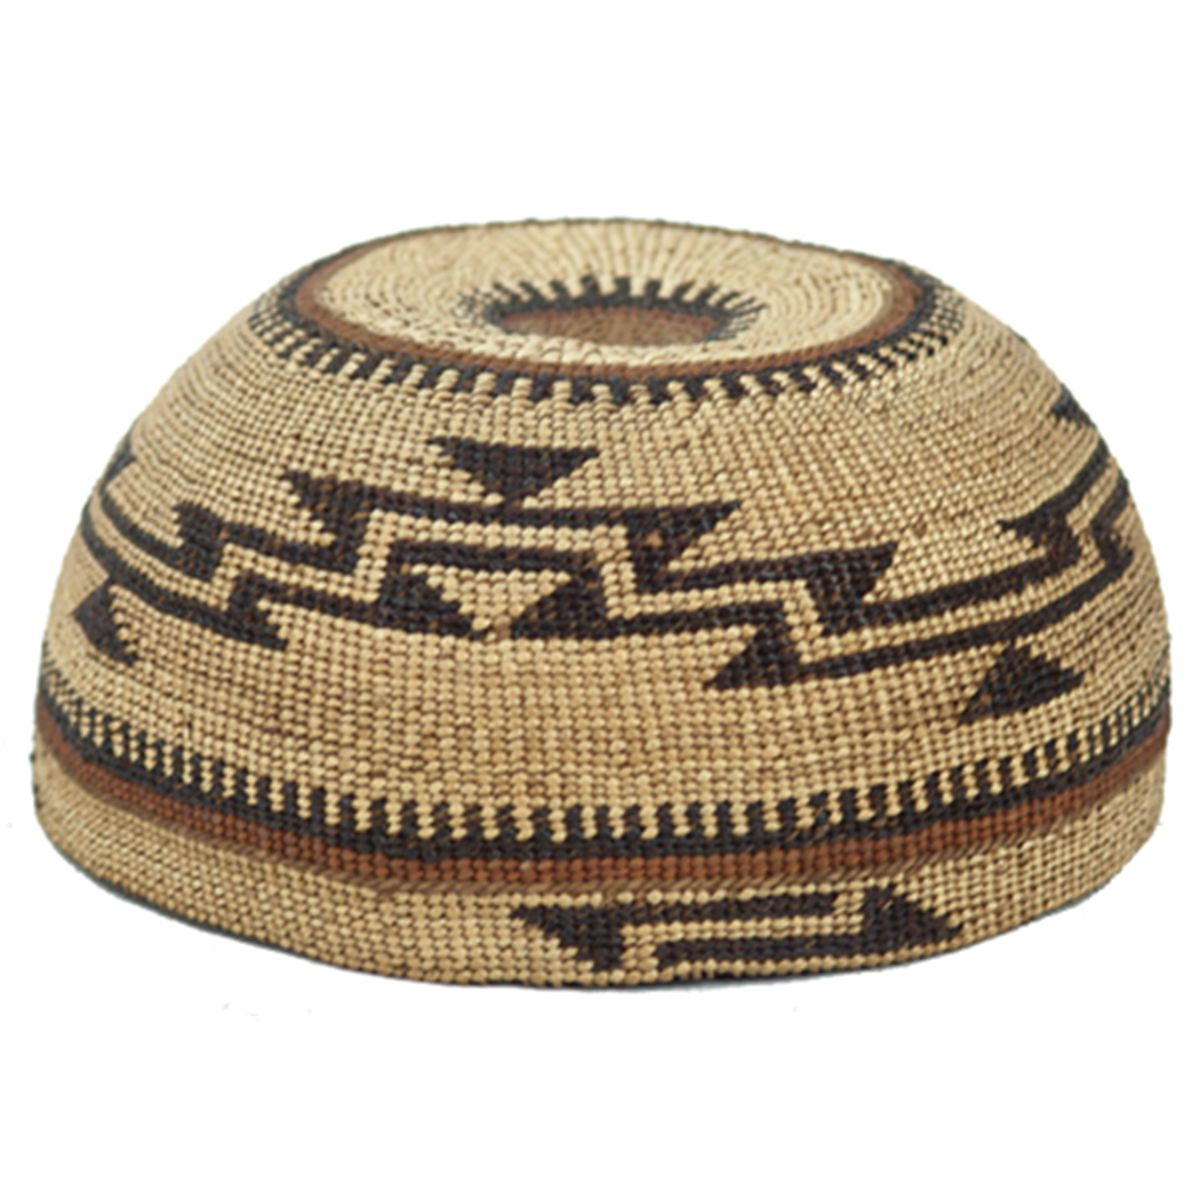 a0bfab2fccf Hupa Basket Hat. Loading zoom